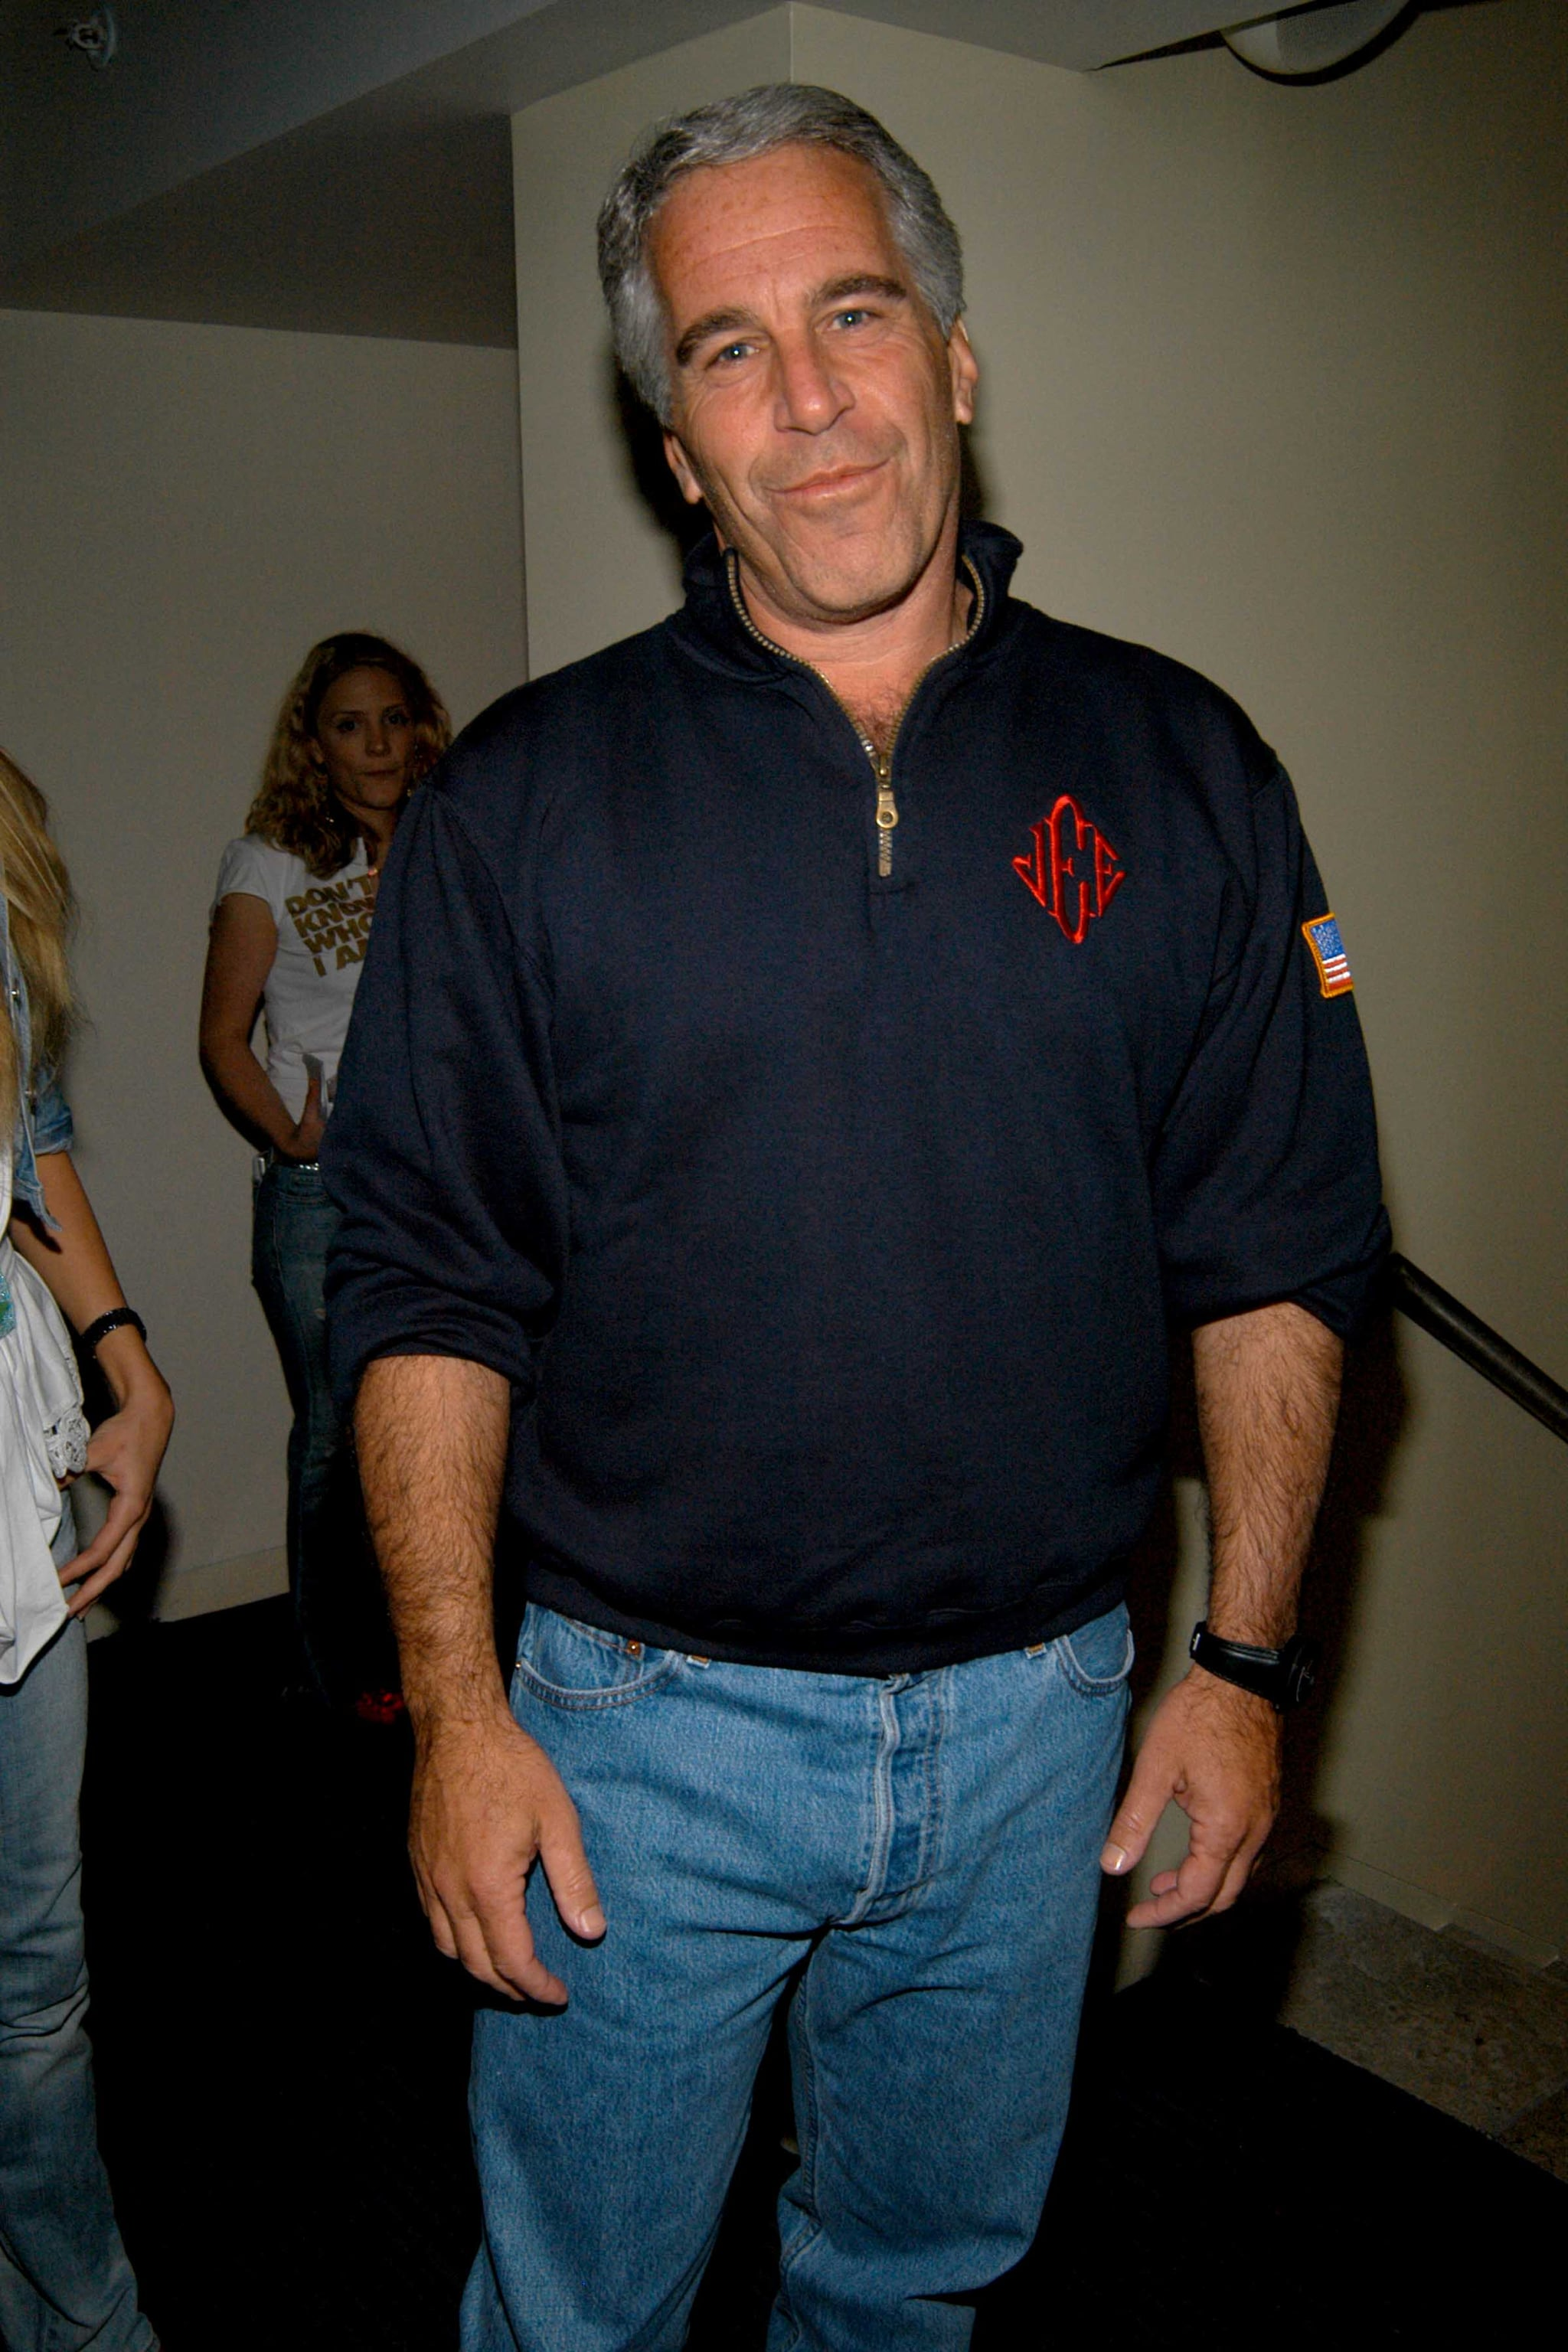 NEW YORK, NY - MAY 18: Jeffrey Epstein attends Launch of RADAR MAGAZINE at Hotel QT on May 18, 2005. (Photo by Neil Rasmus/Patrick McMullan via Getty Images)